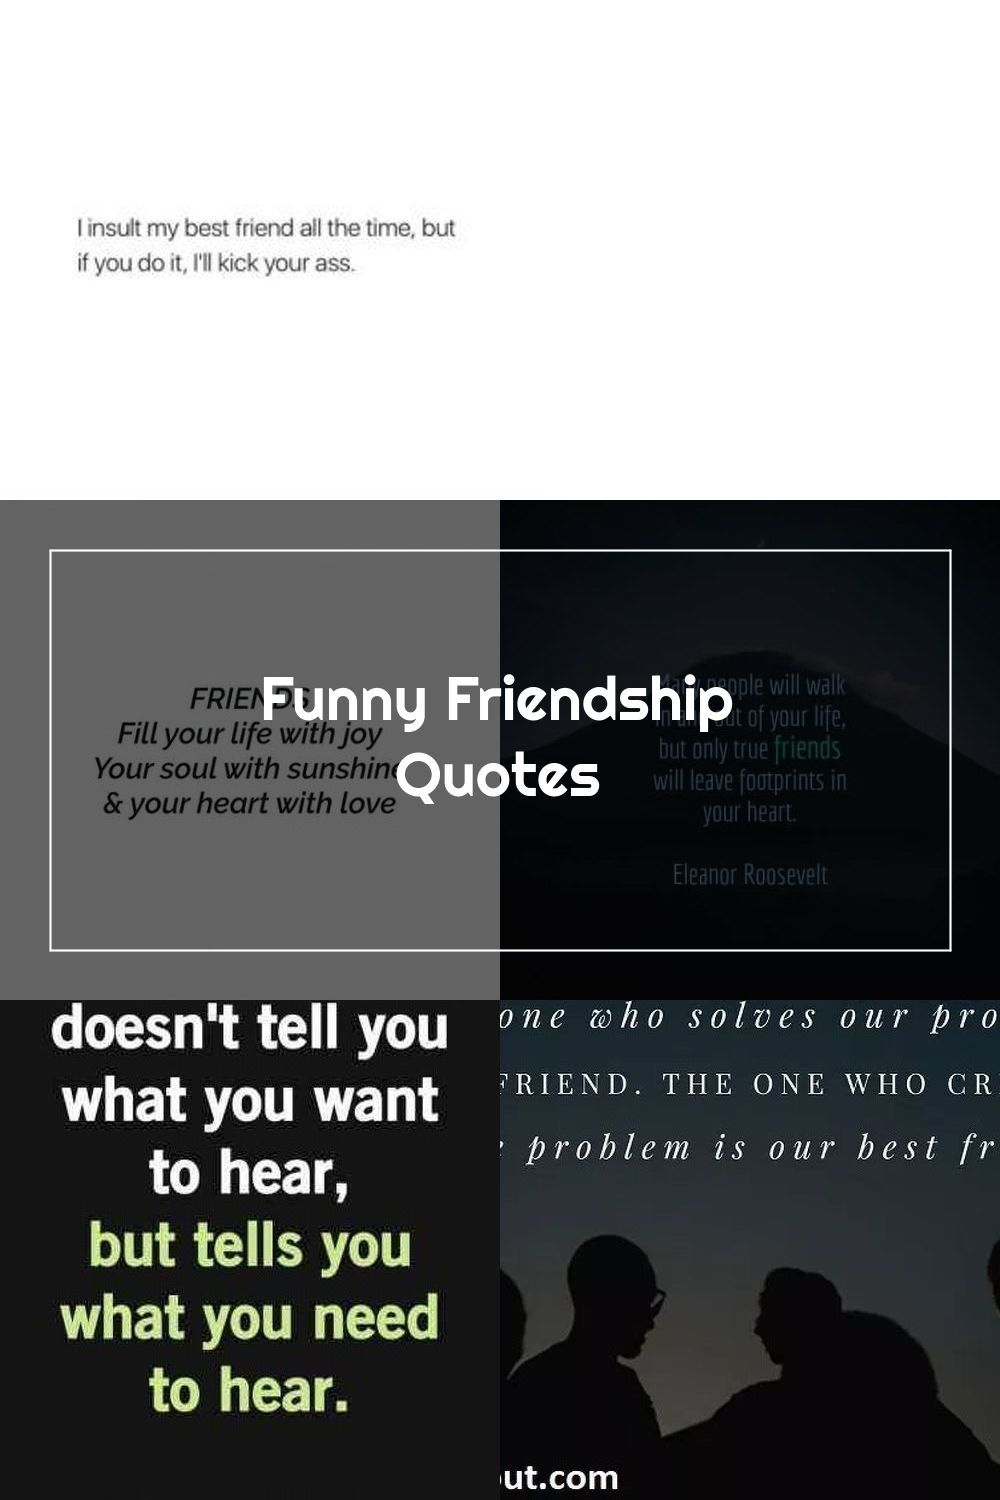 Short Funny Friendship Quotes Funny Friendship Quotes And Sayings Funny Friendship Bff Quotes Sayings